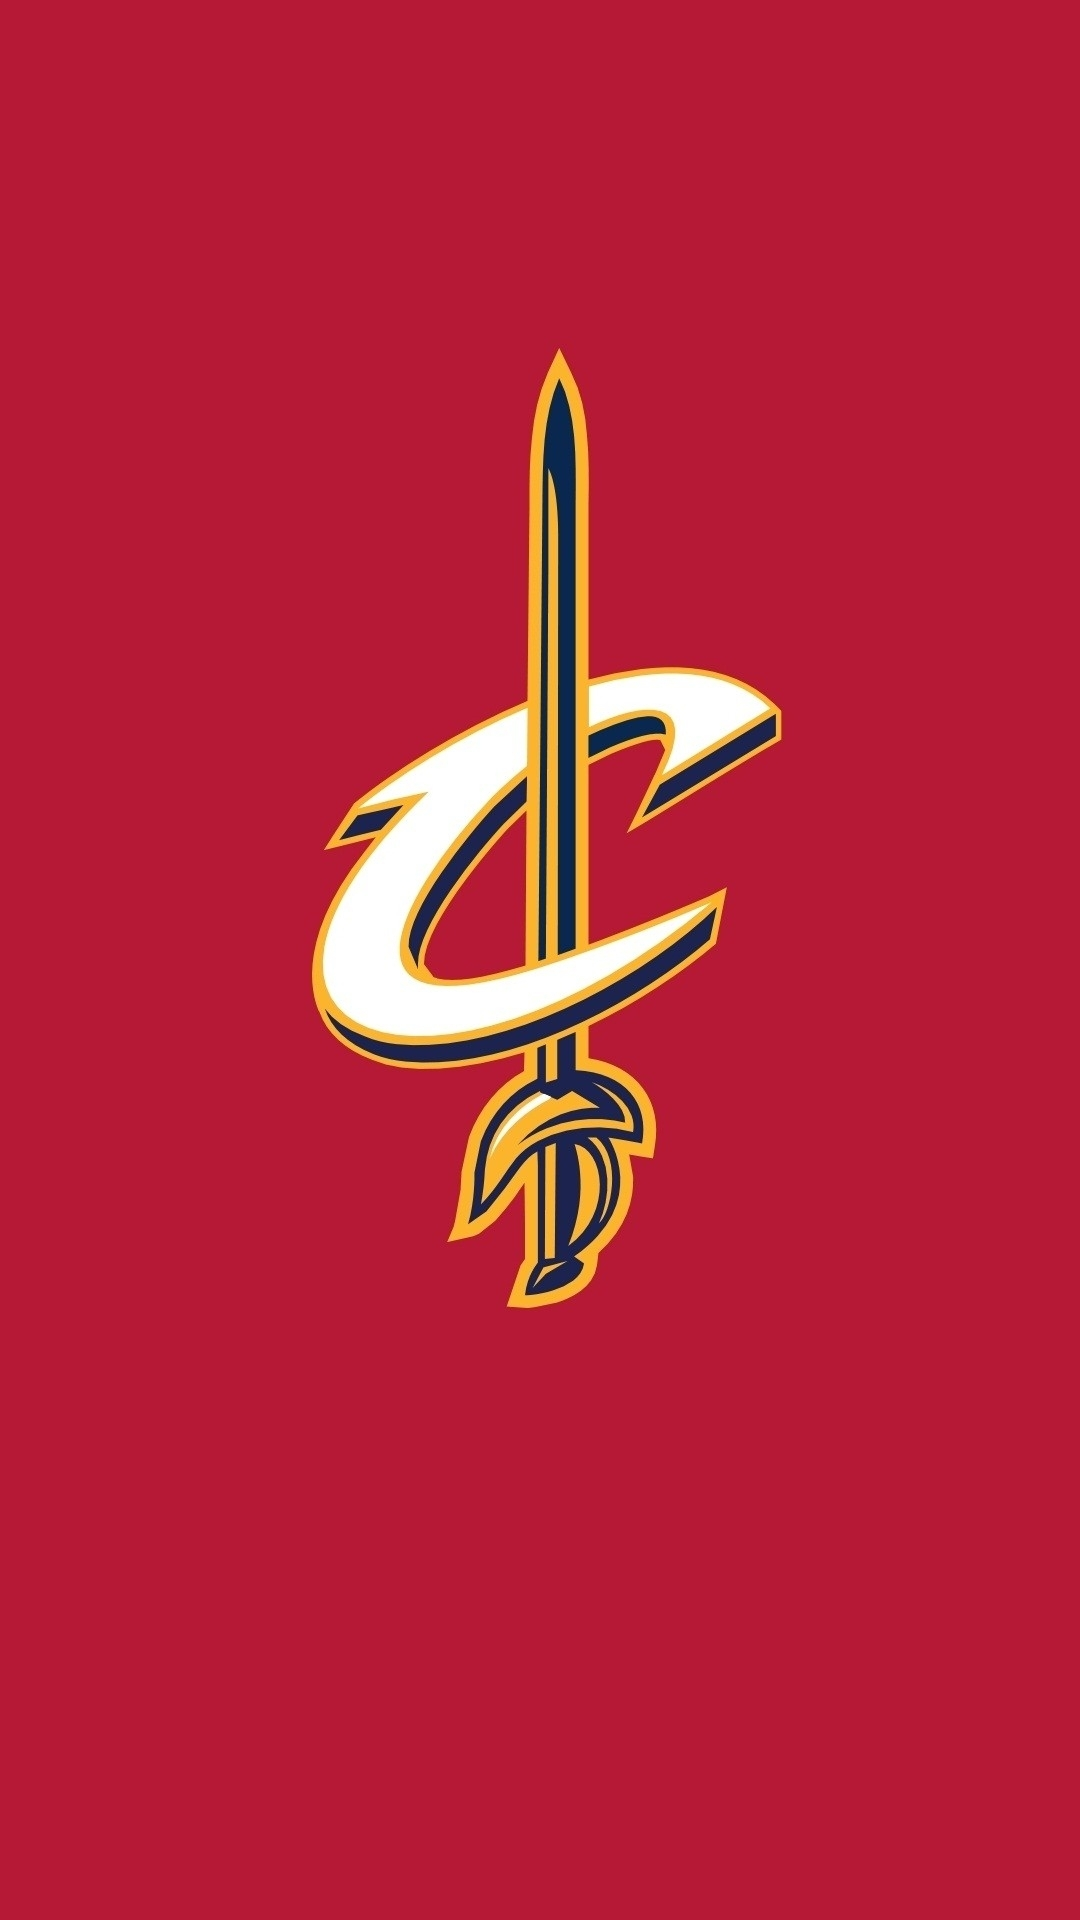 Title : cleveland cavaliers wallpaper for iphone - 2018 iphone wallpapers. Dimension : 1080 x 1920. File Type : JPG/JPEG